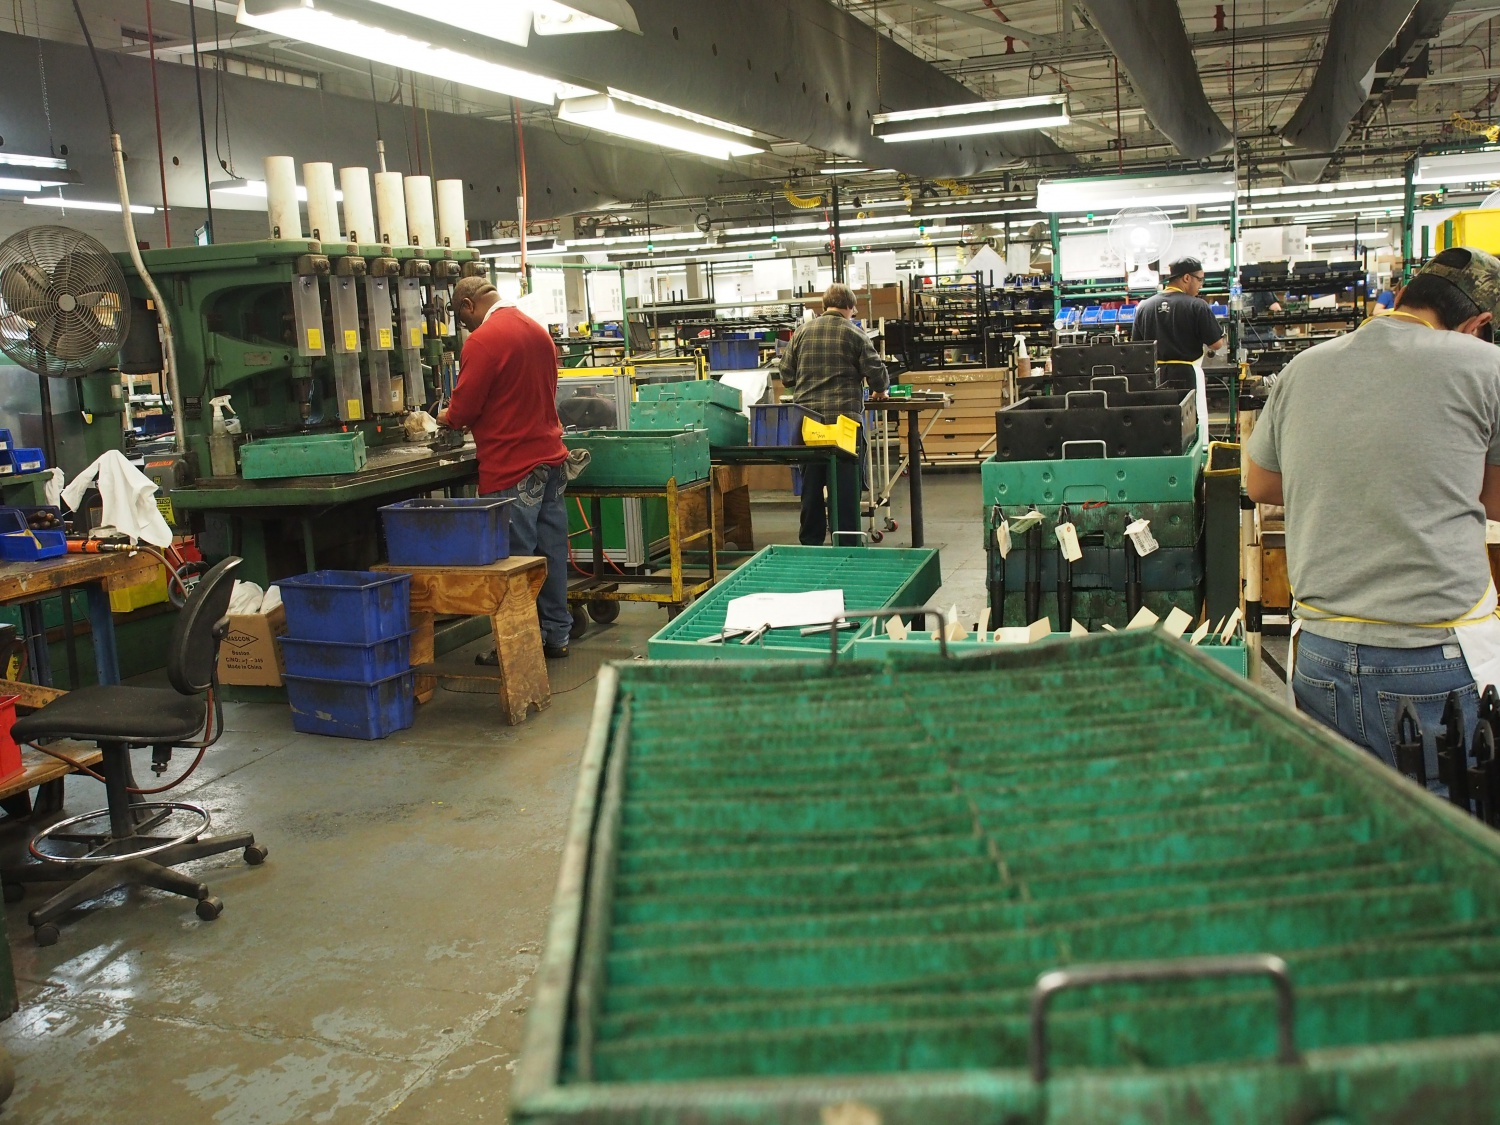 Rifle assembly line